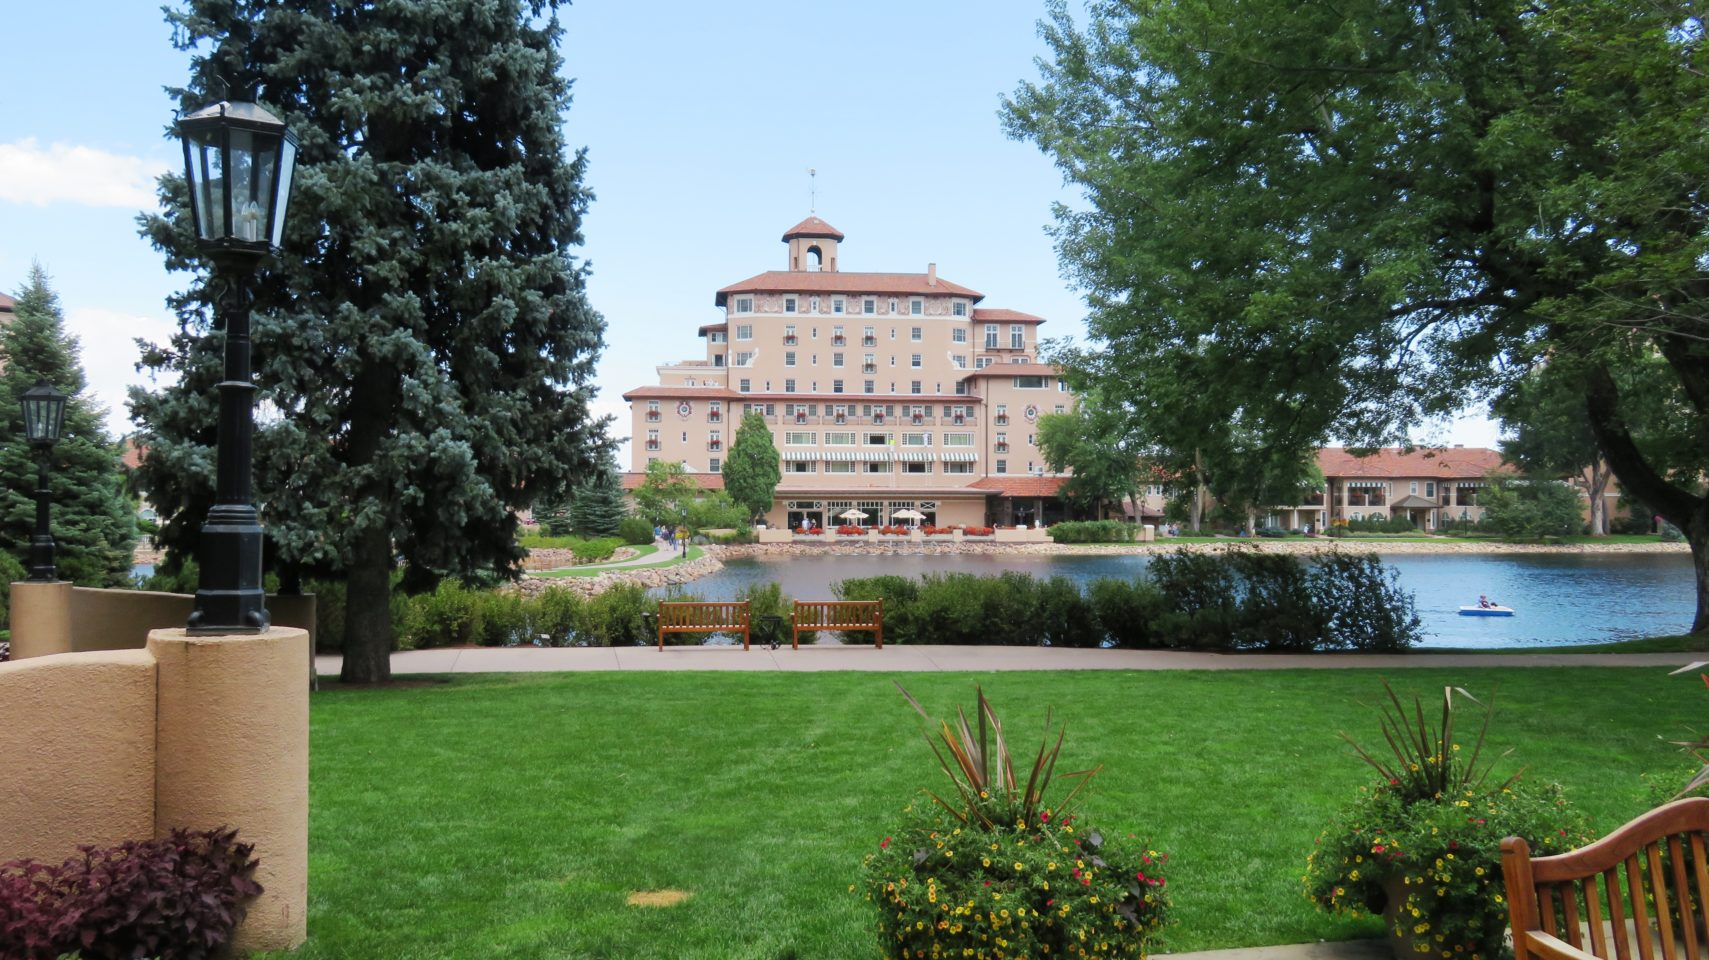 <em><strong>The Broadmoor</strong></em> ~ One of the Finest Resorts in the World